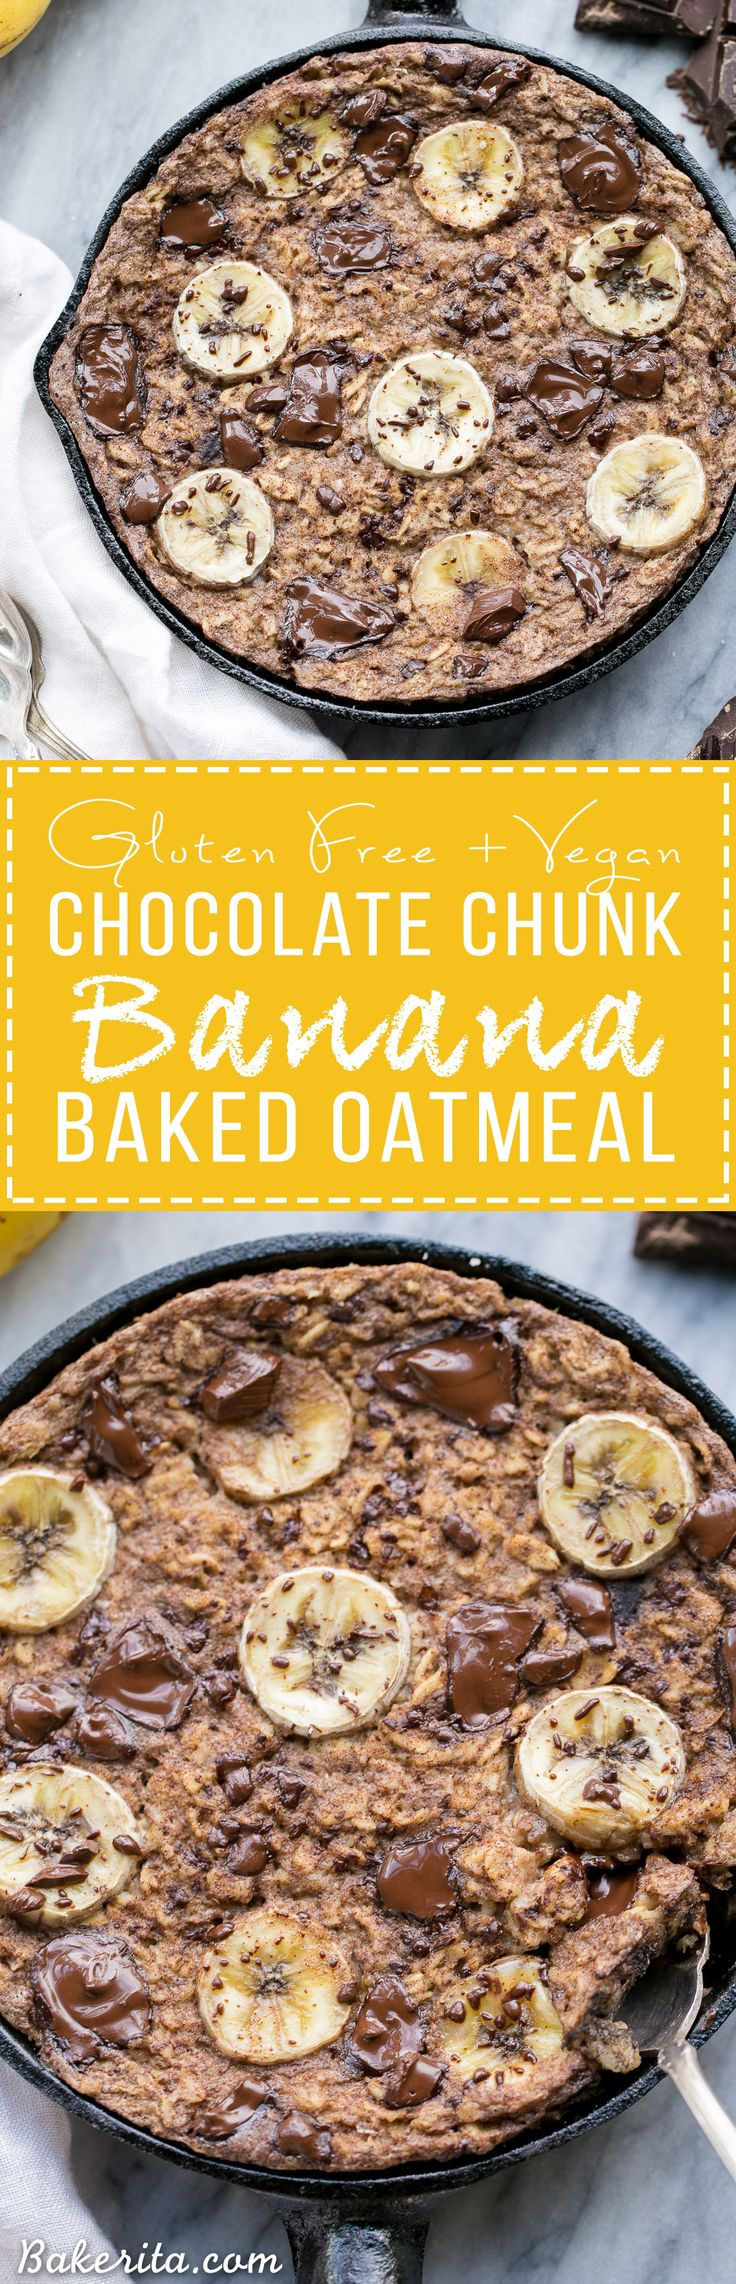 This easy Chocolate Chunk Banana Baked Oatmeal is a delicious twist on classic oatmeal - you'll definitely want to start your day with a serving of this gluten-free + vegan breakfast! This healthier oatmeal has no added sweetener; it's sweetened entirely with ripe banana and chocolate chunks.